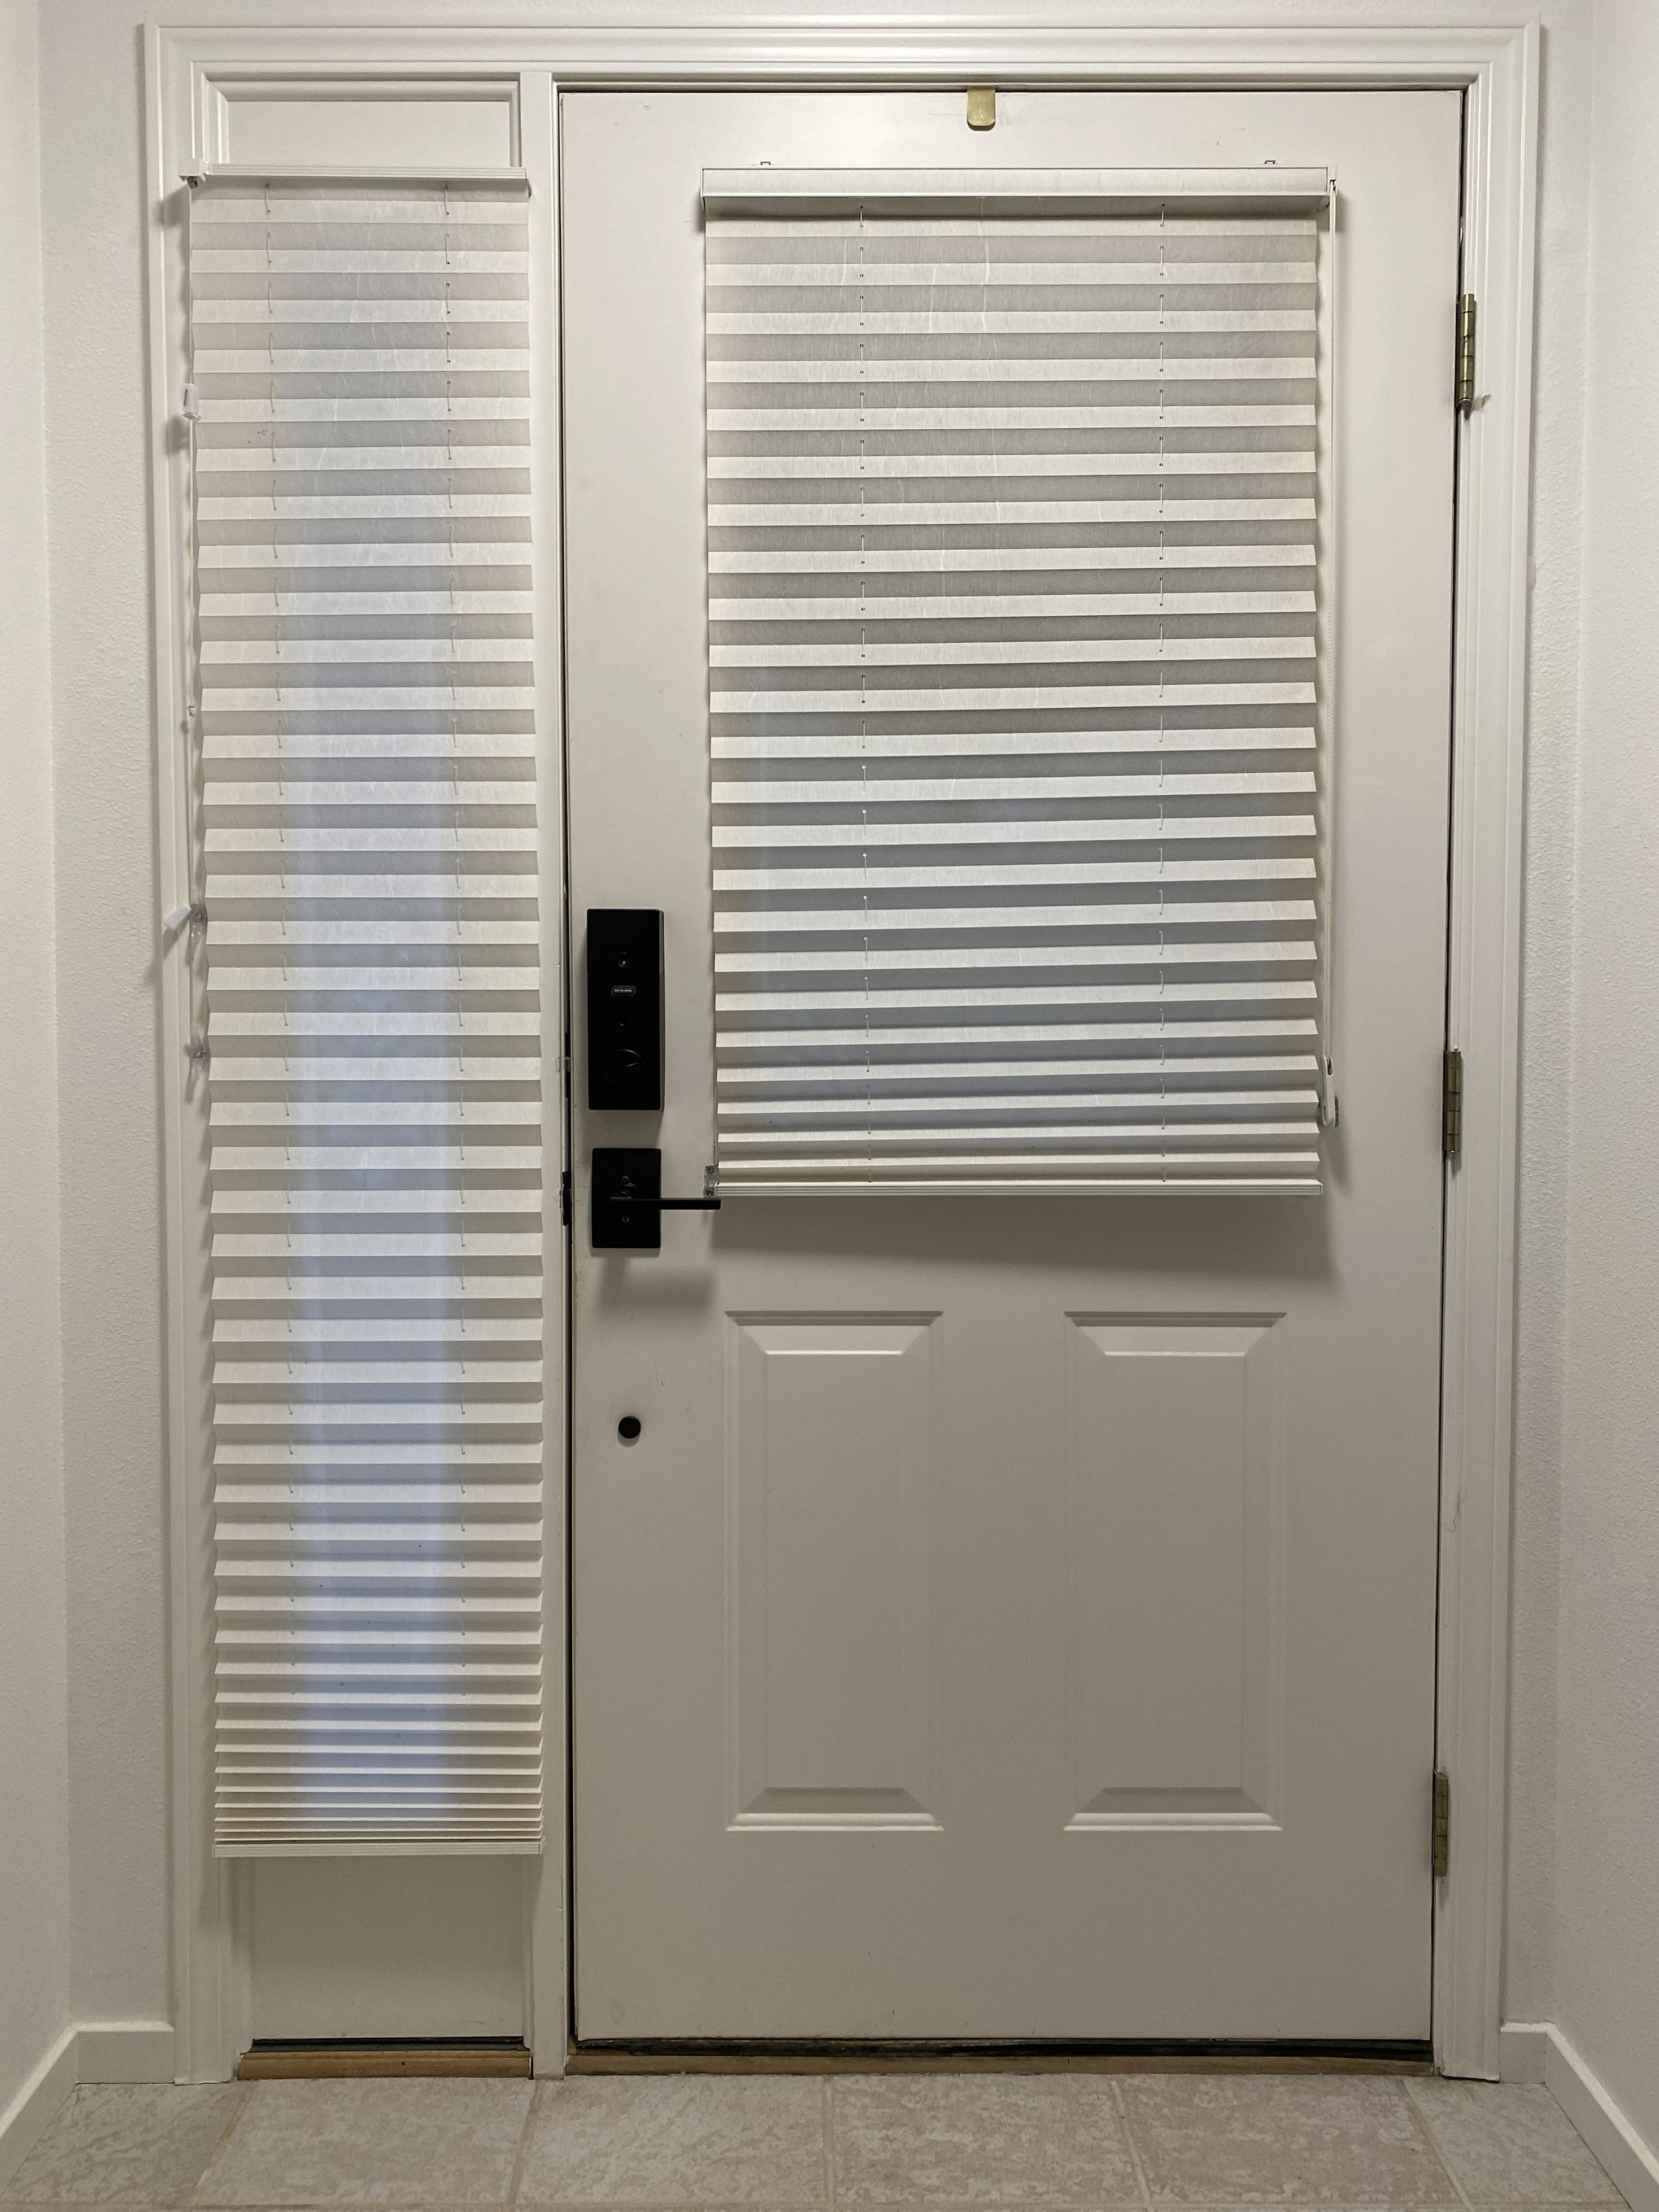 The Blinds on my Door